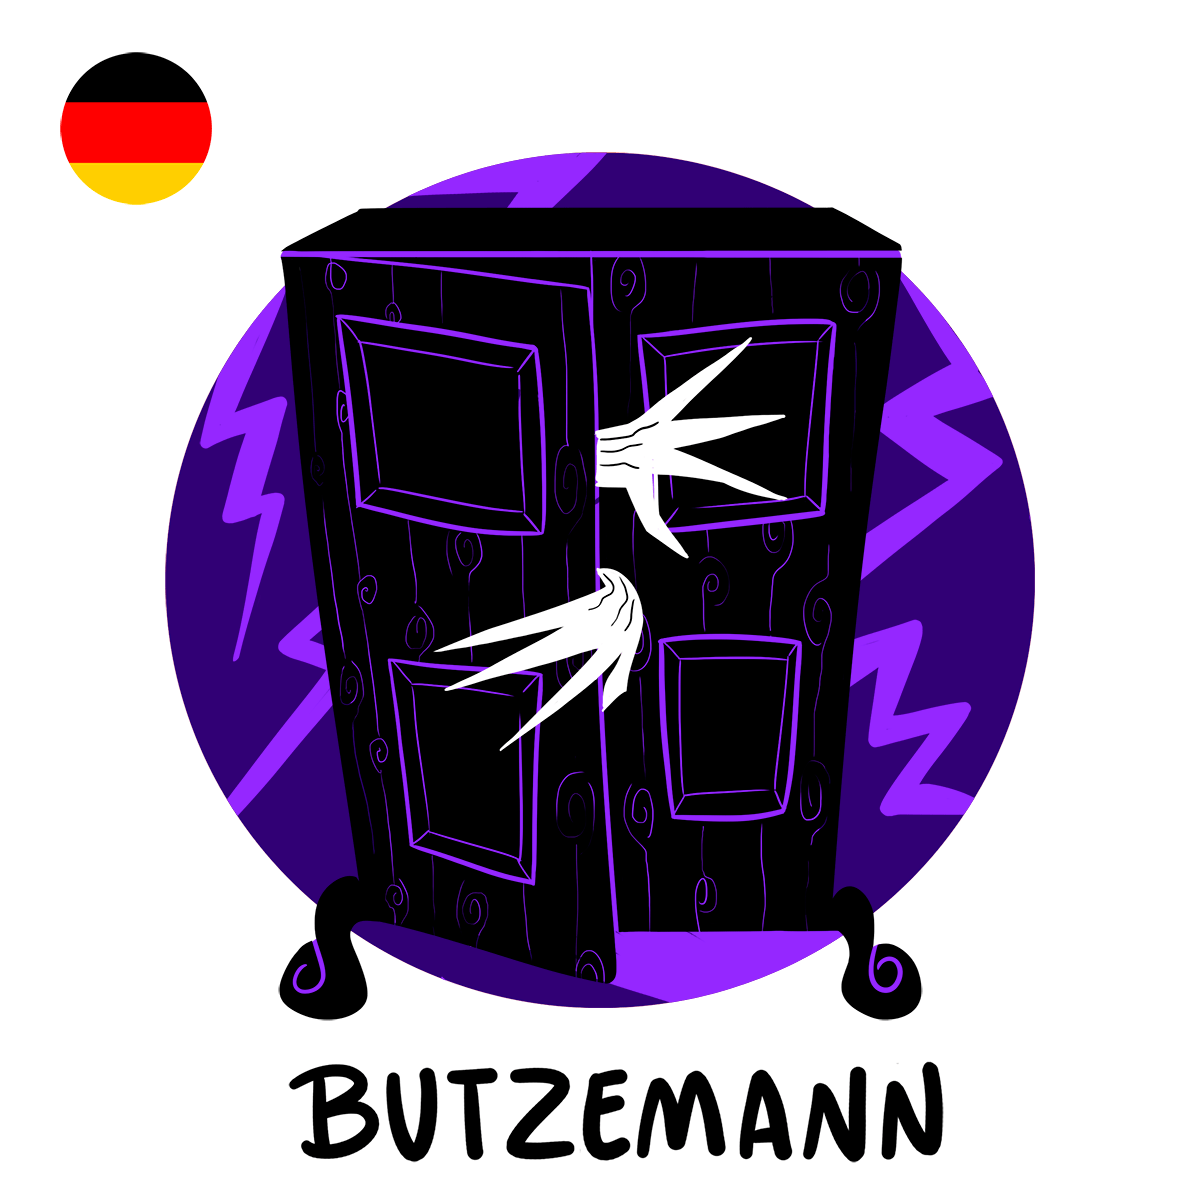 illustration of Butzemann, the german boogeyman, coming out of a wardrobe